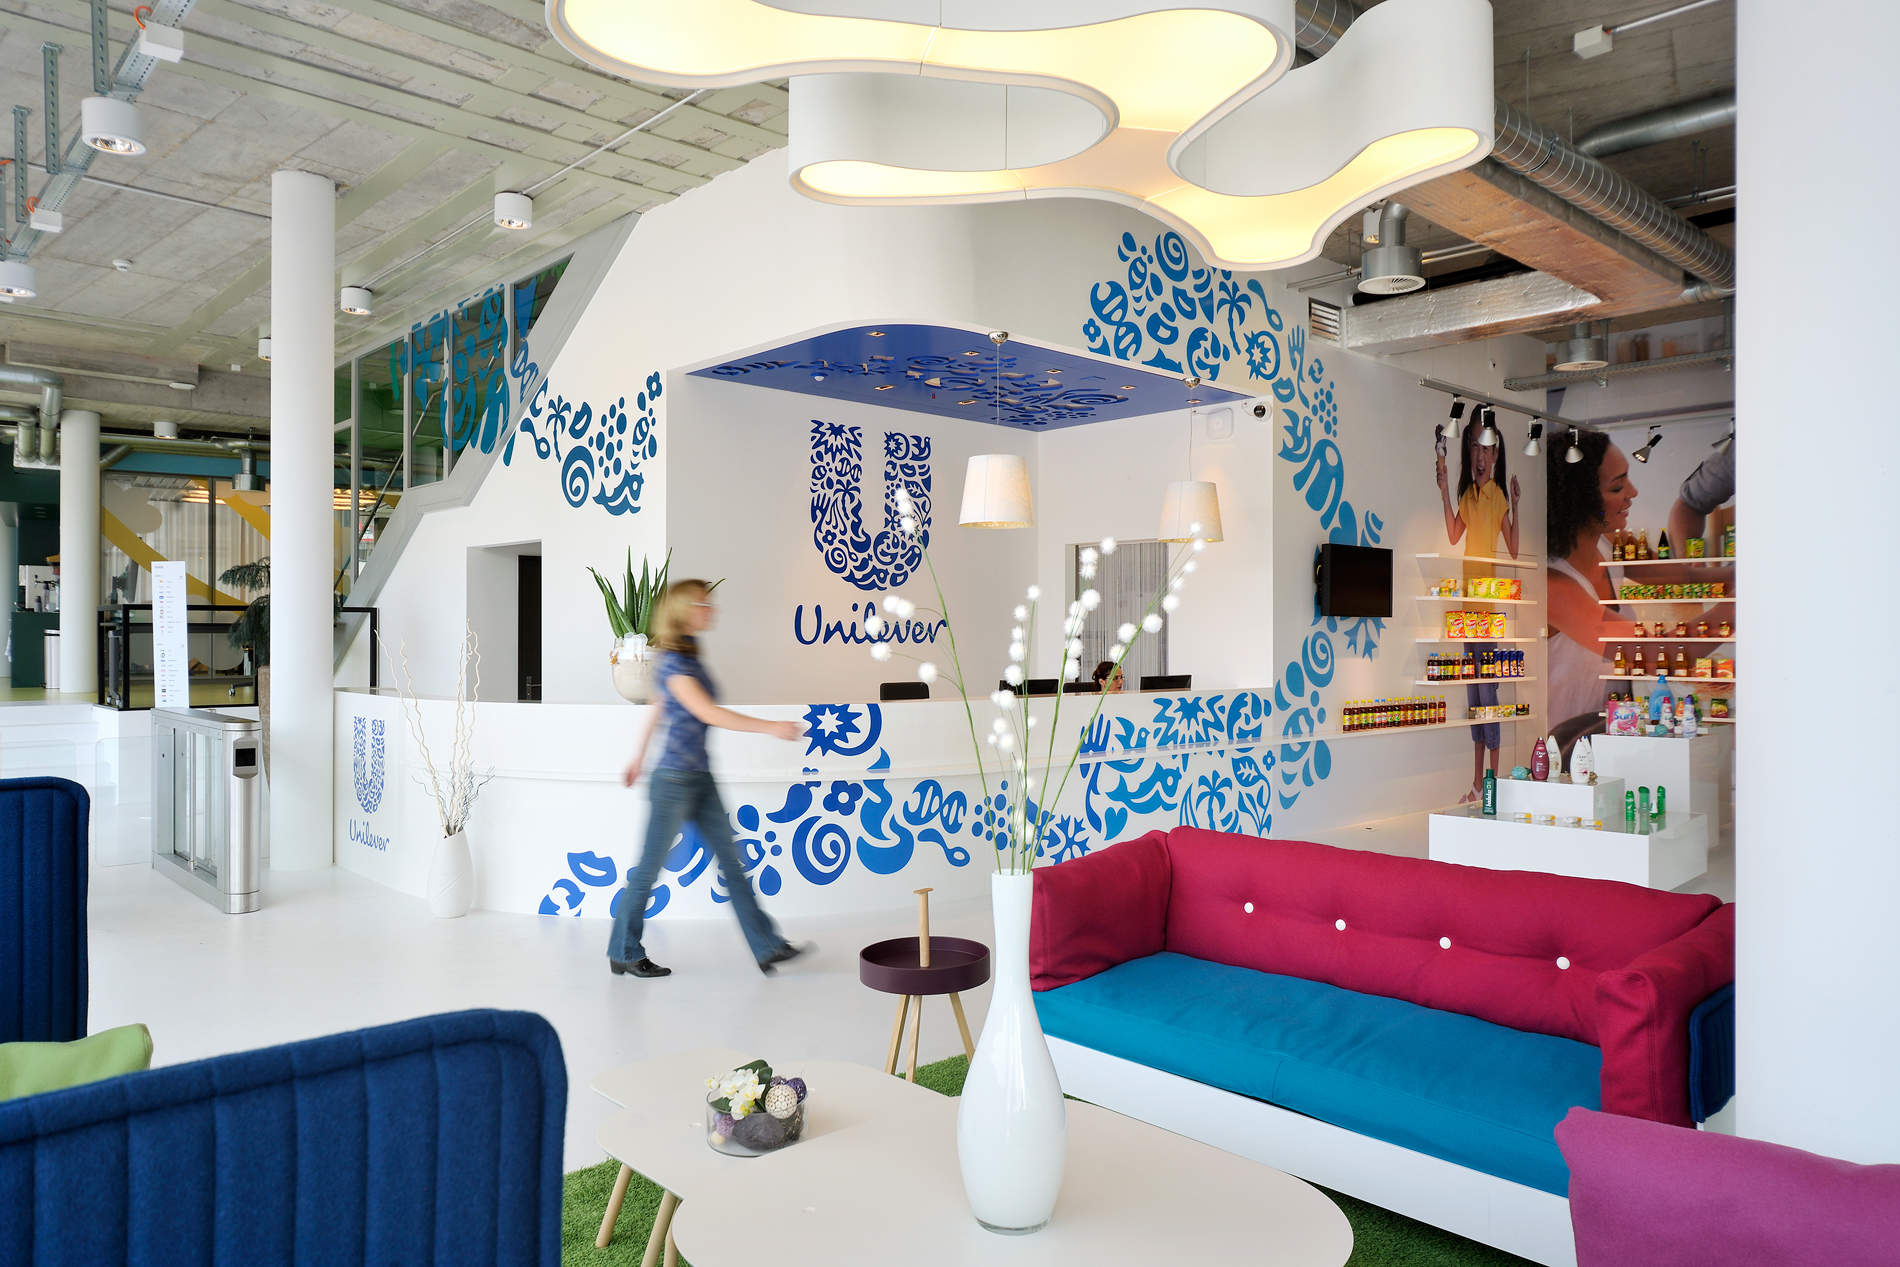 Unilever Schaffhausen likewise Unilever Office Camenzind Evolution as well Unilever Switzerland Offices Agile Working In Action besides Unilever Switzerland Offices likewise Unilever Headquarter Building. on unilever offices switzerland